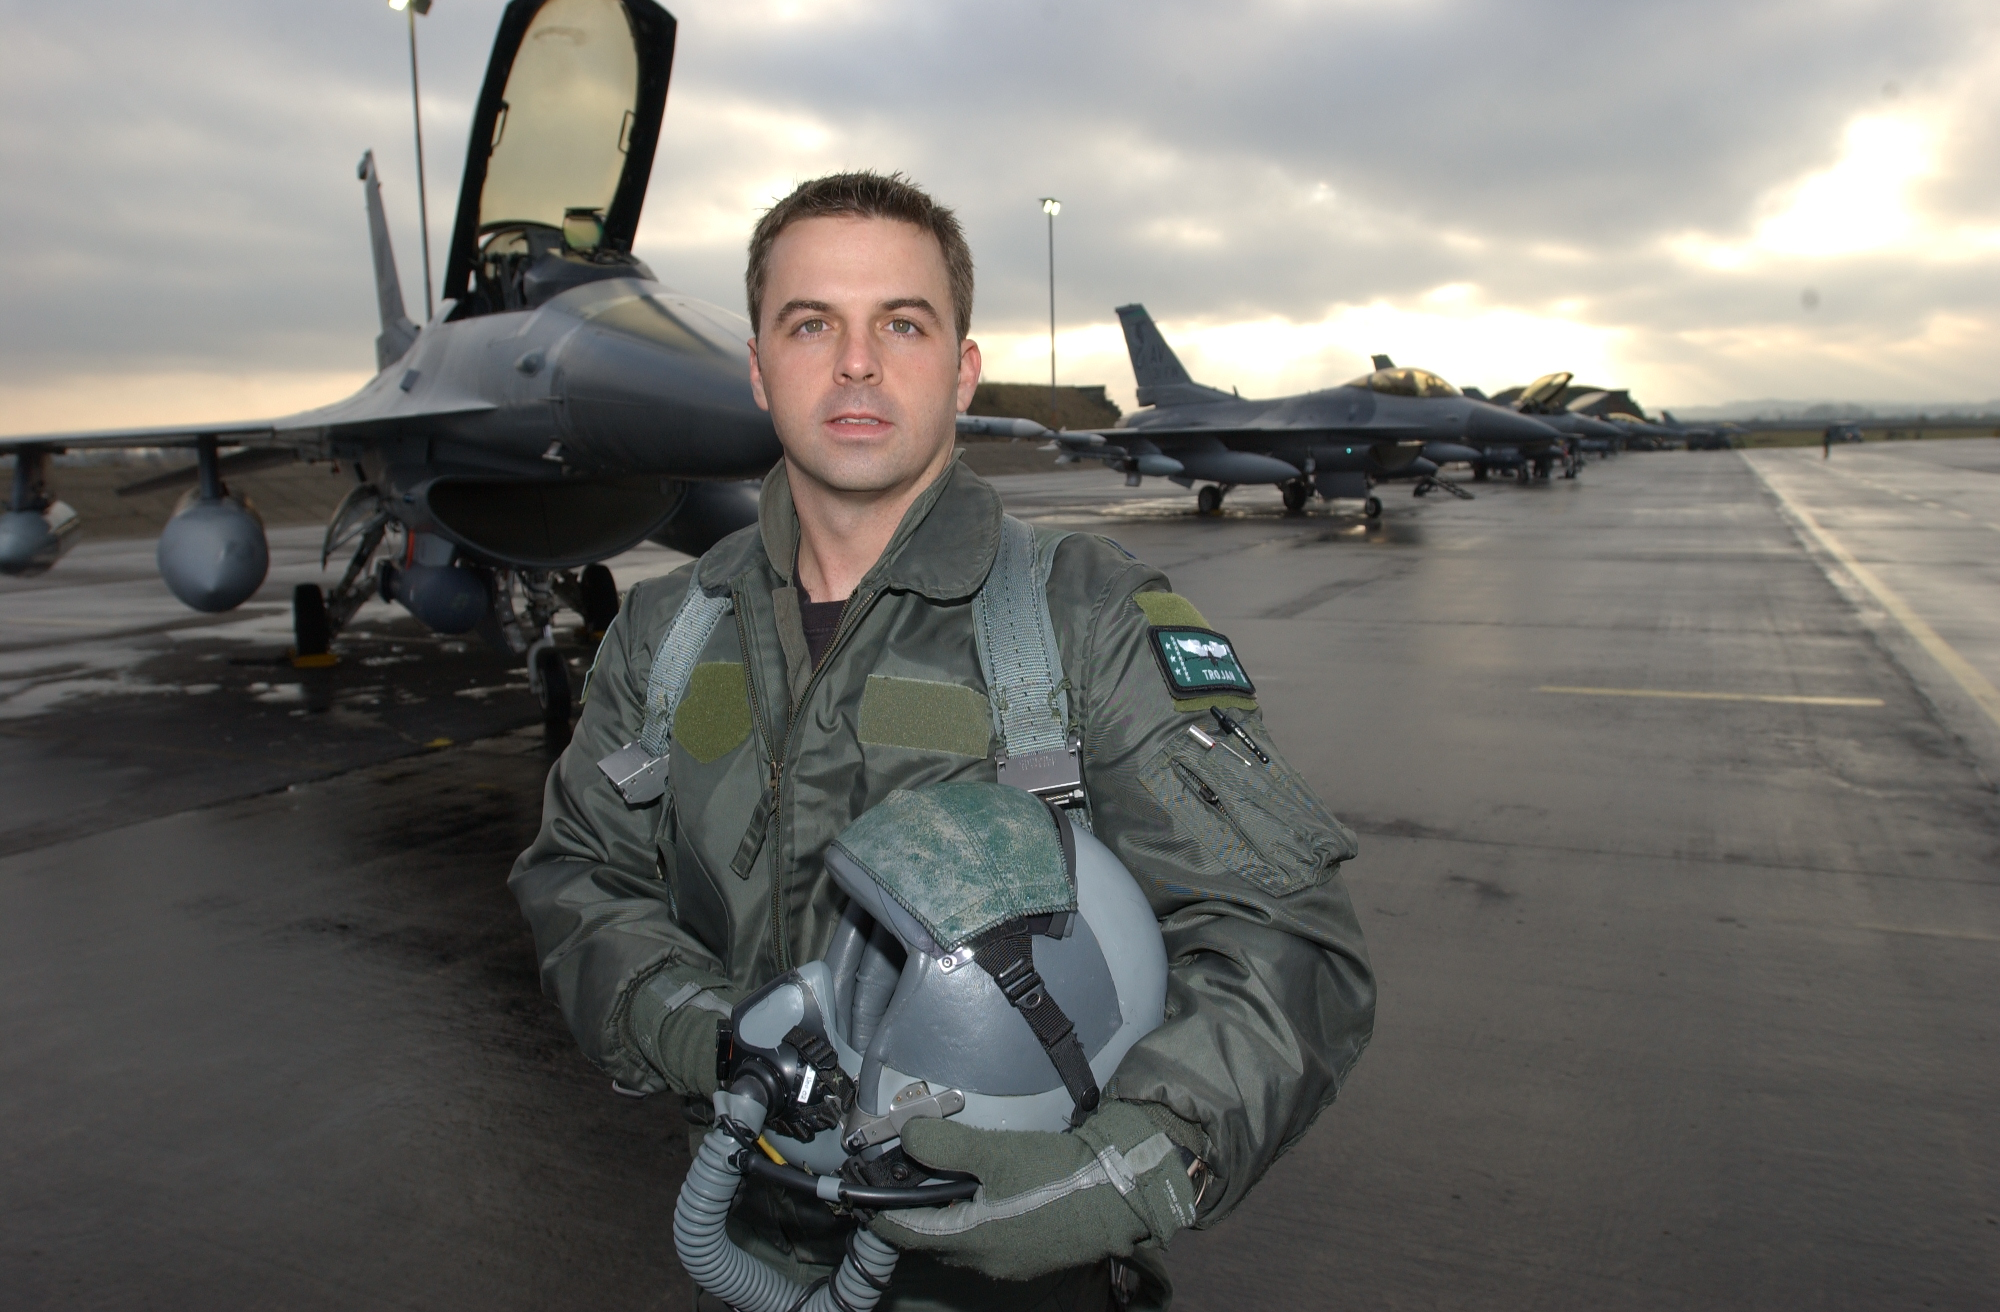 Troy Gilbert in 2002 on the flight line at Incirlik air base, Turkey, where he was helping enforce the no-fly zone over northern Iraq